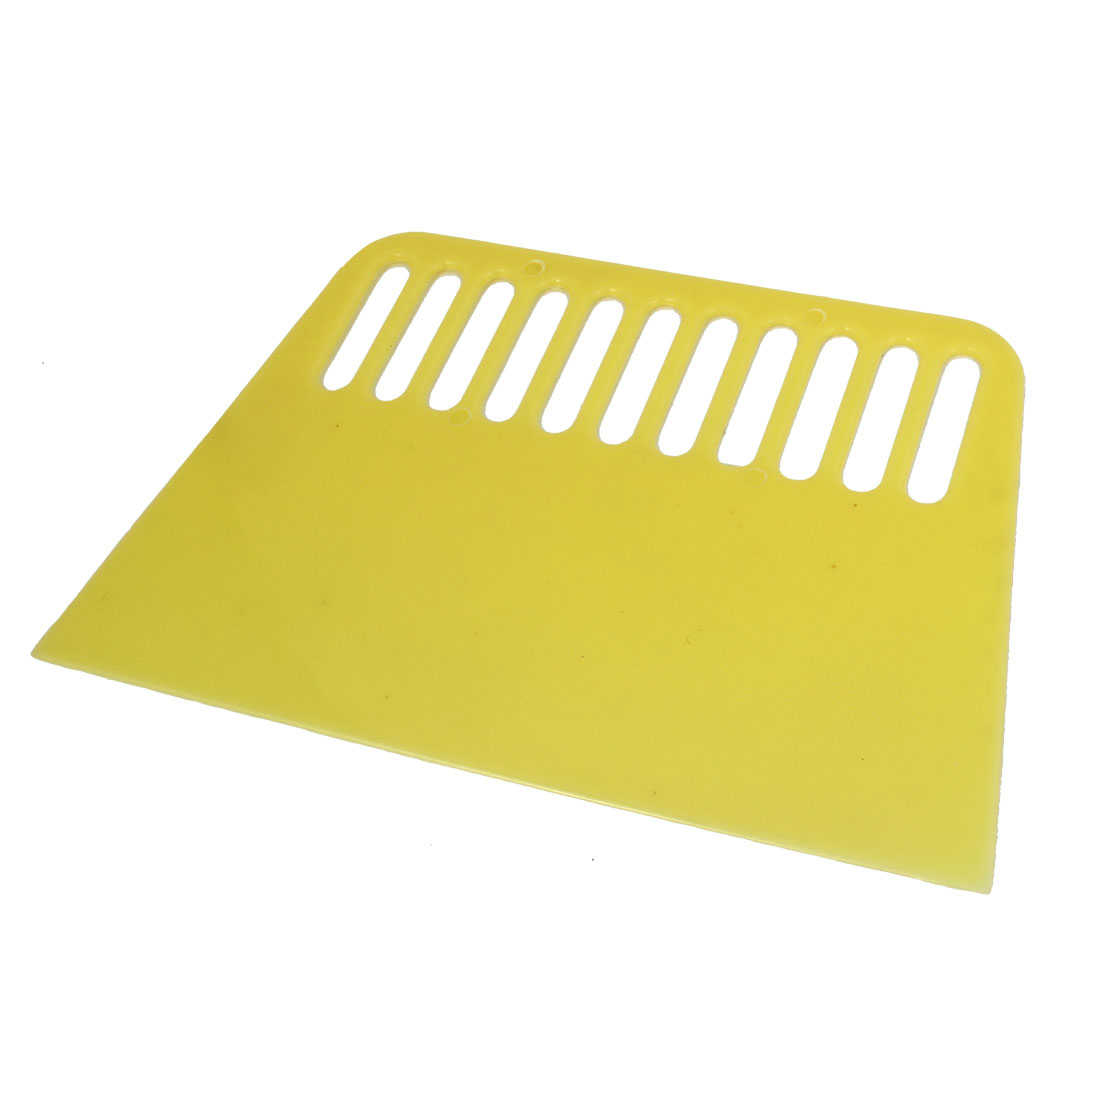 Unique Bargains House Wall Wallpaper Painting Tool Plastic Handheld Putty Scraper Light Yellow